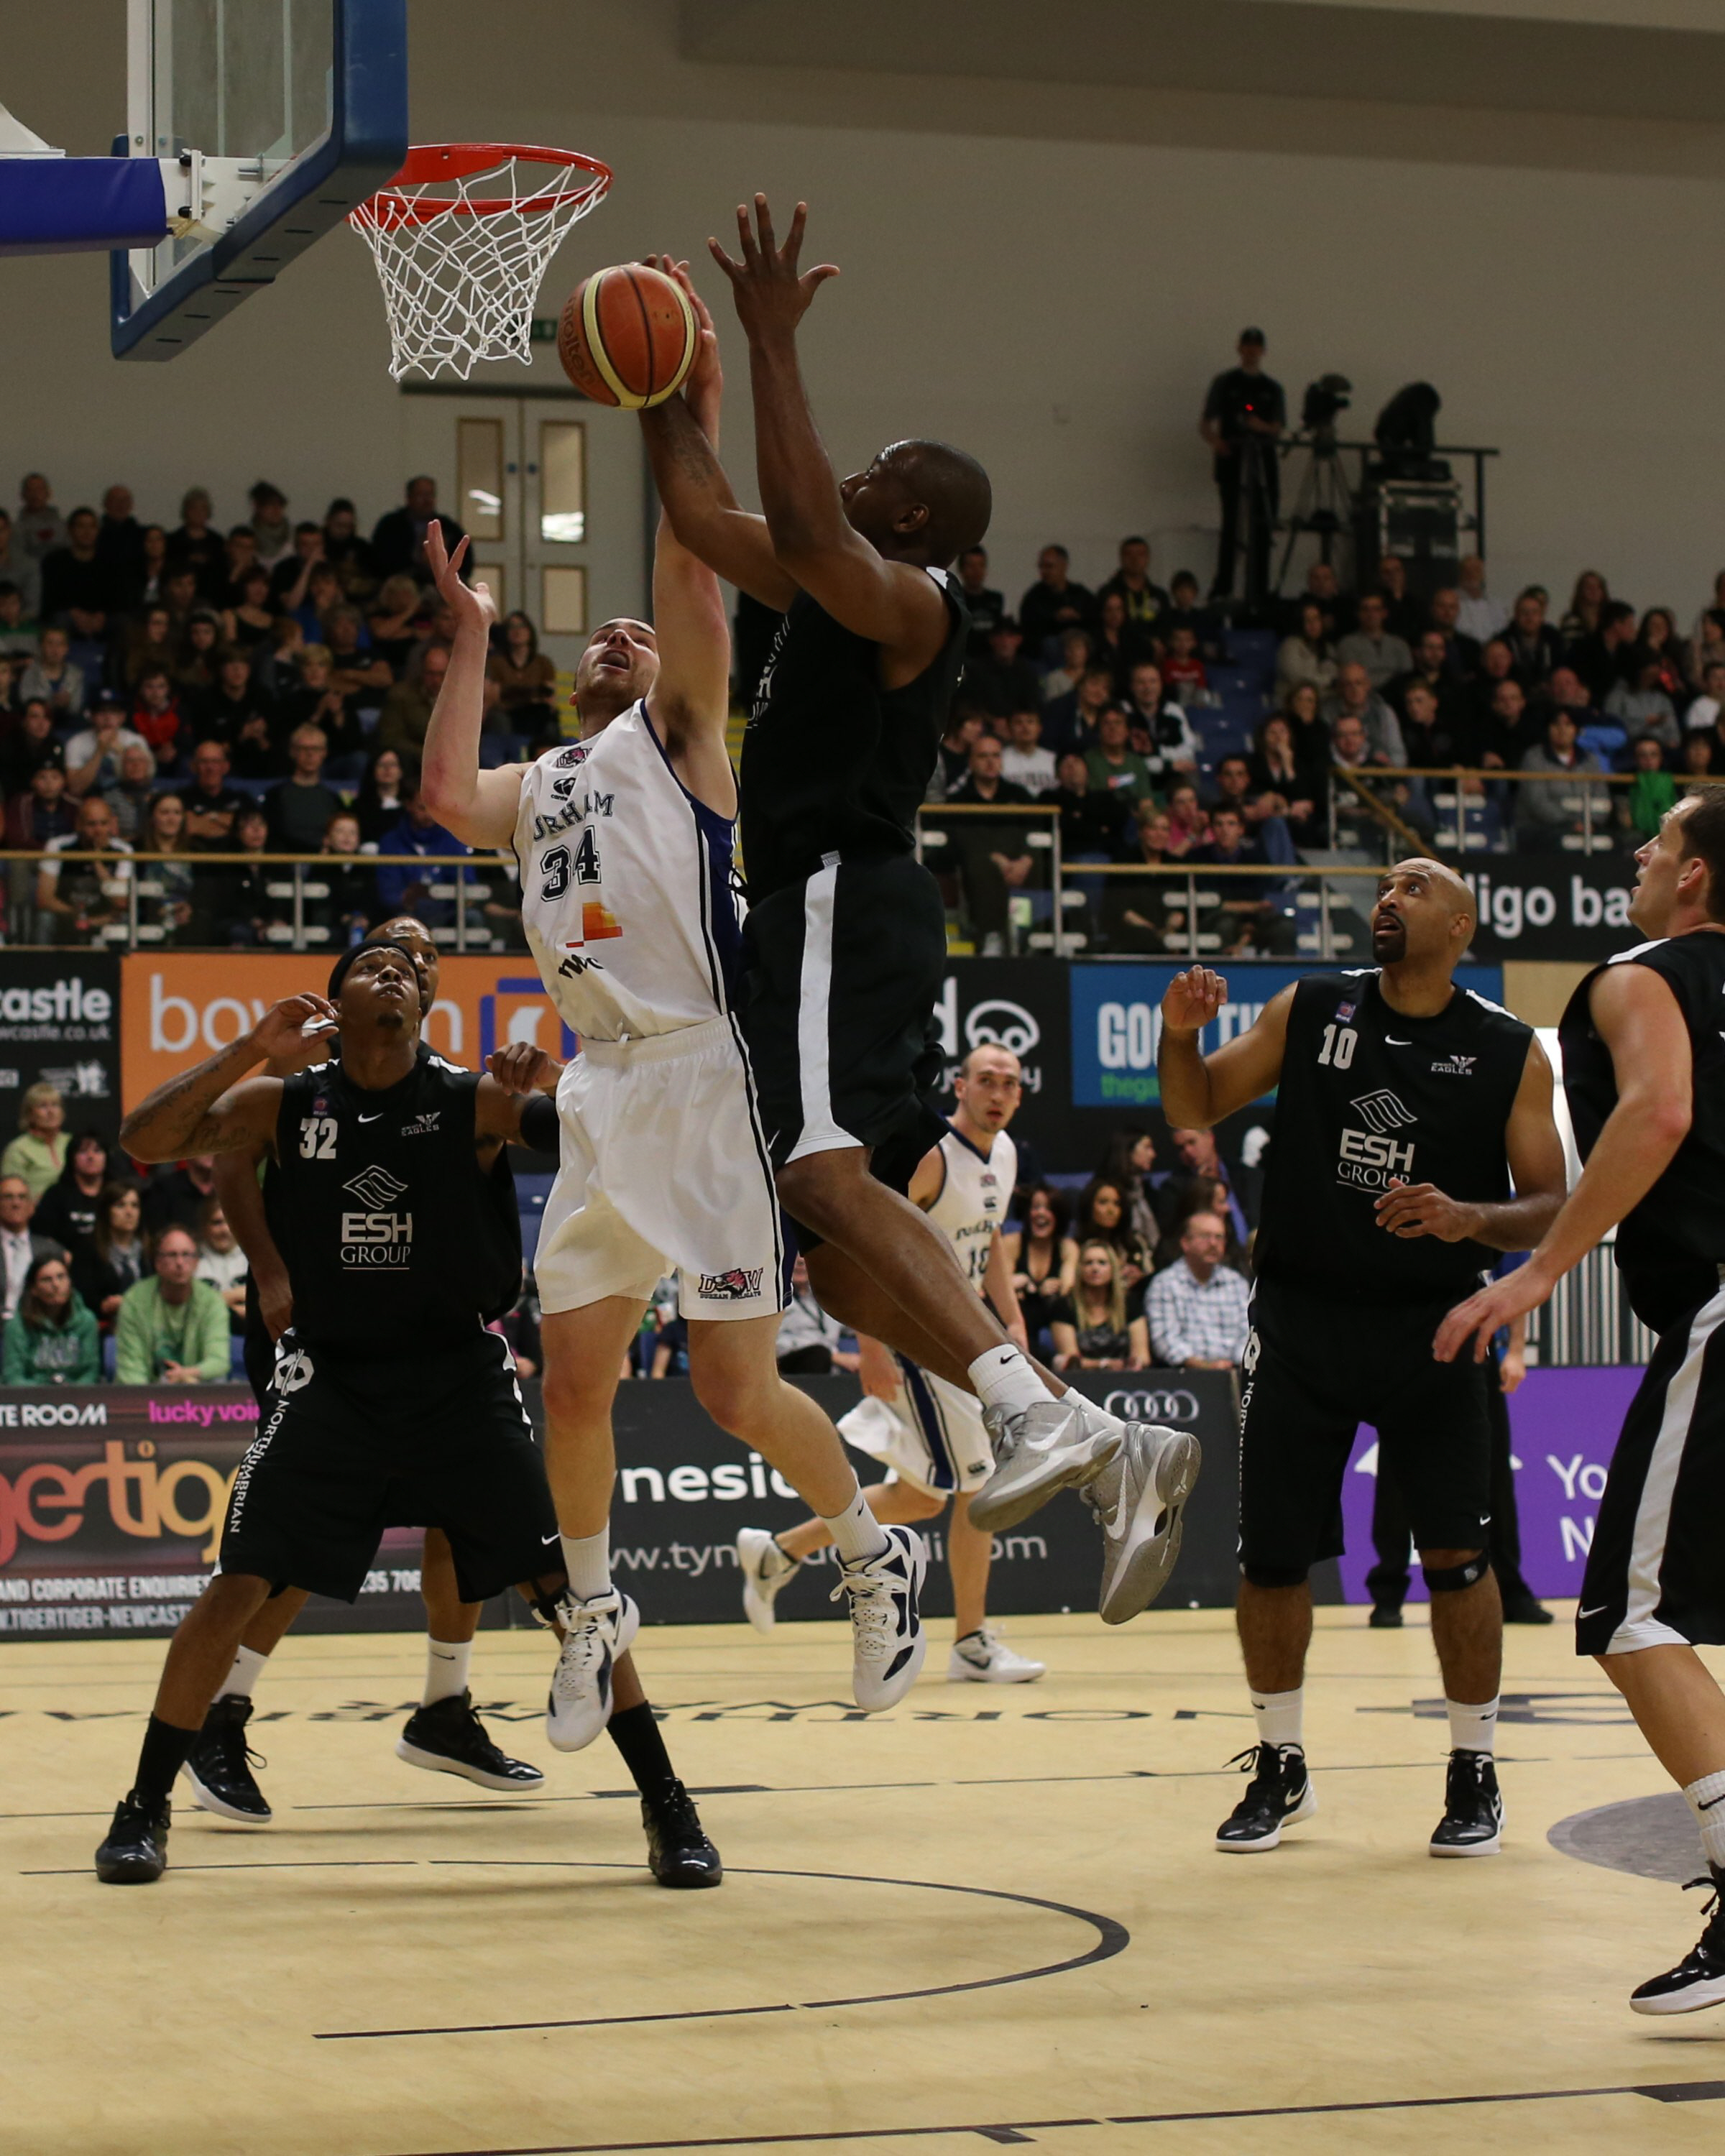 EAGLES FLY HIGH: Newcastle Eagles beat Durham Wildcats this afternoon in their BBL derby